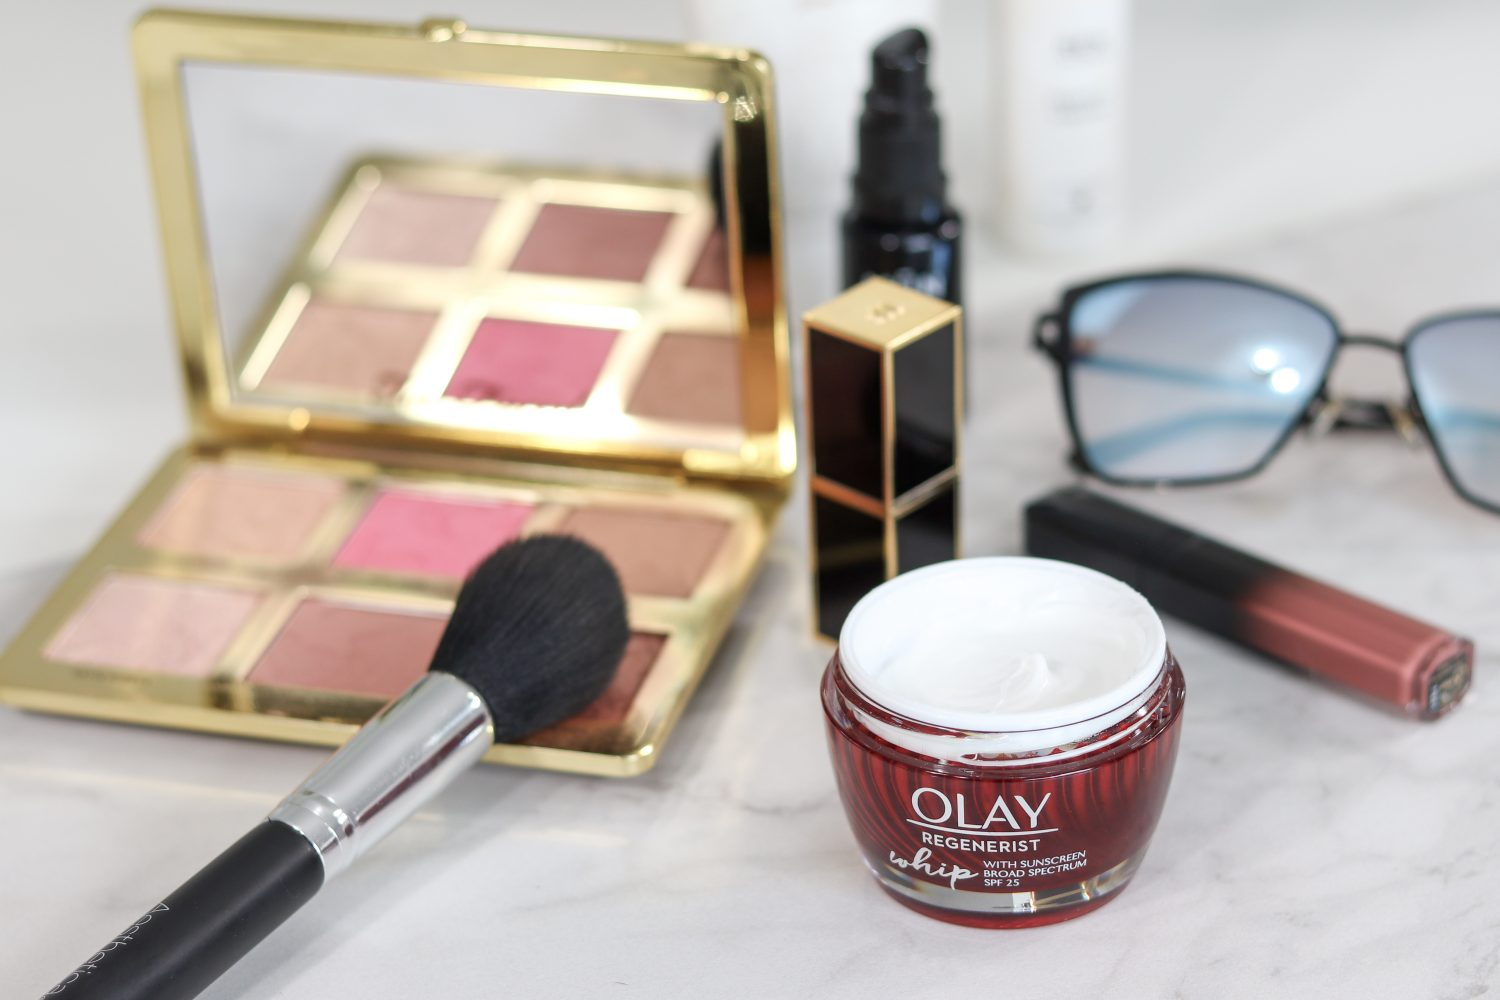 Olay Whips with SPF 25 Regenerist